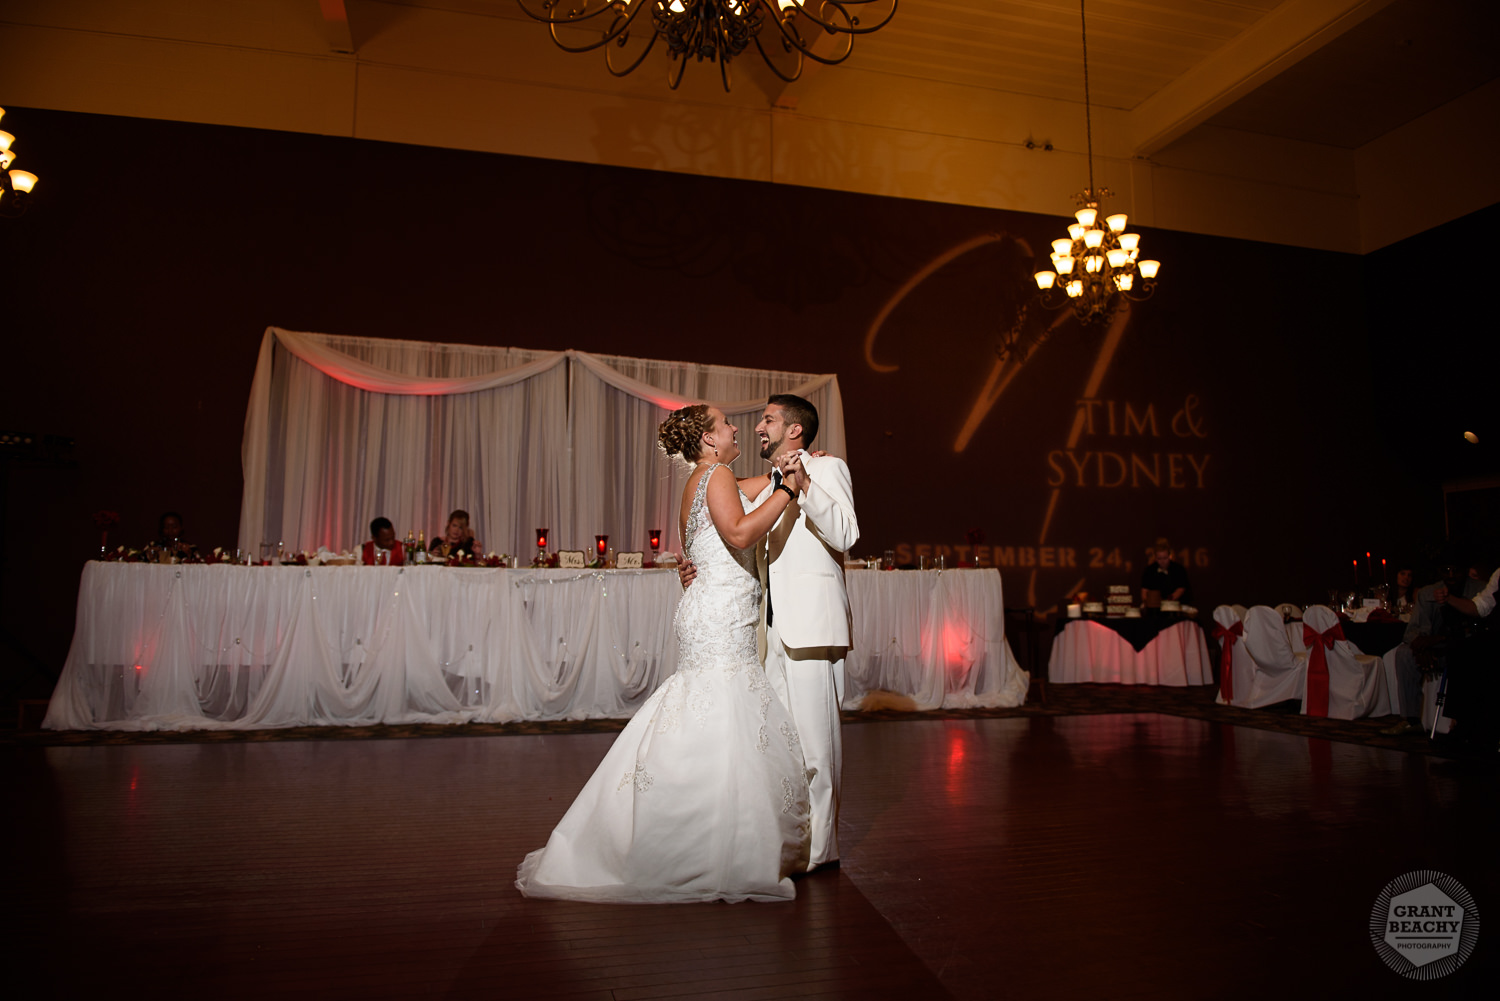 Grant Beachy wedding photographer, south bend, elkhart, chicago-41.jpg